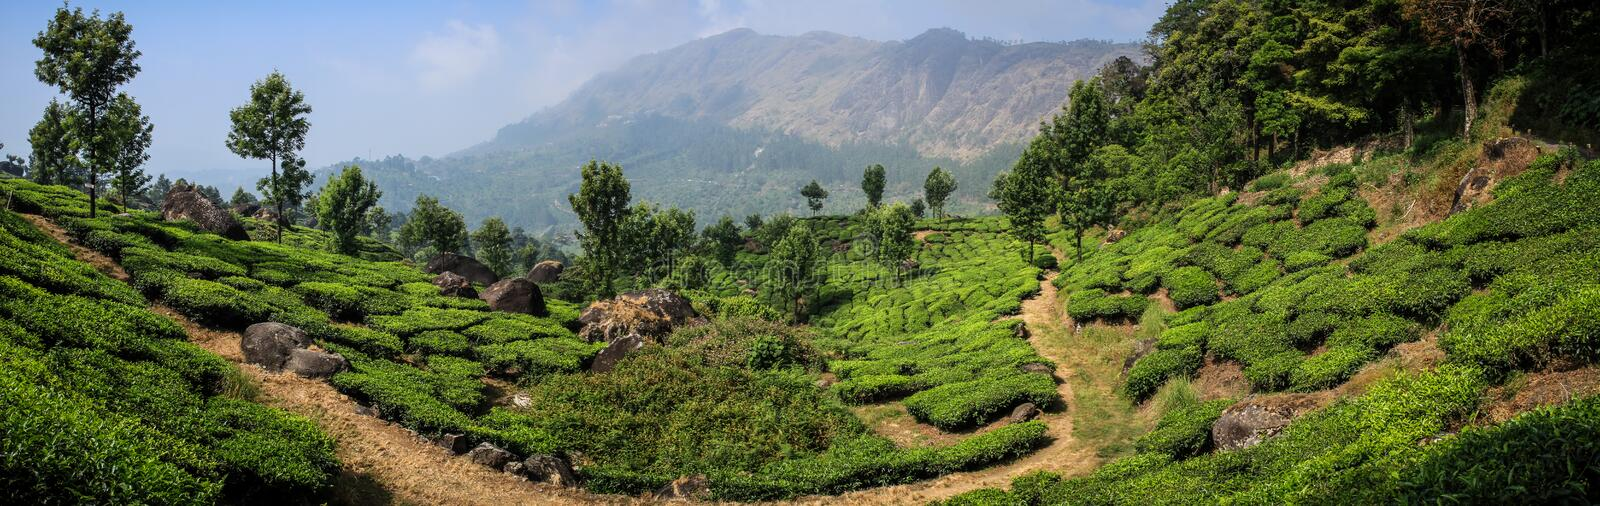 Panoramic view of the green lush tea hills and mountains around Munnar, Kerala, India. Munnar is a town and hill station located in the Idukki district of the stock photo